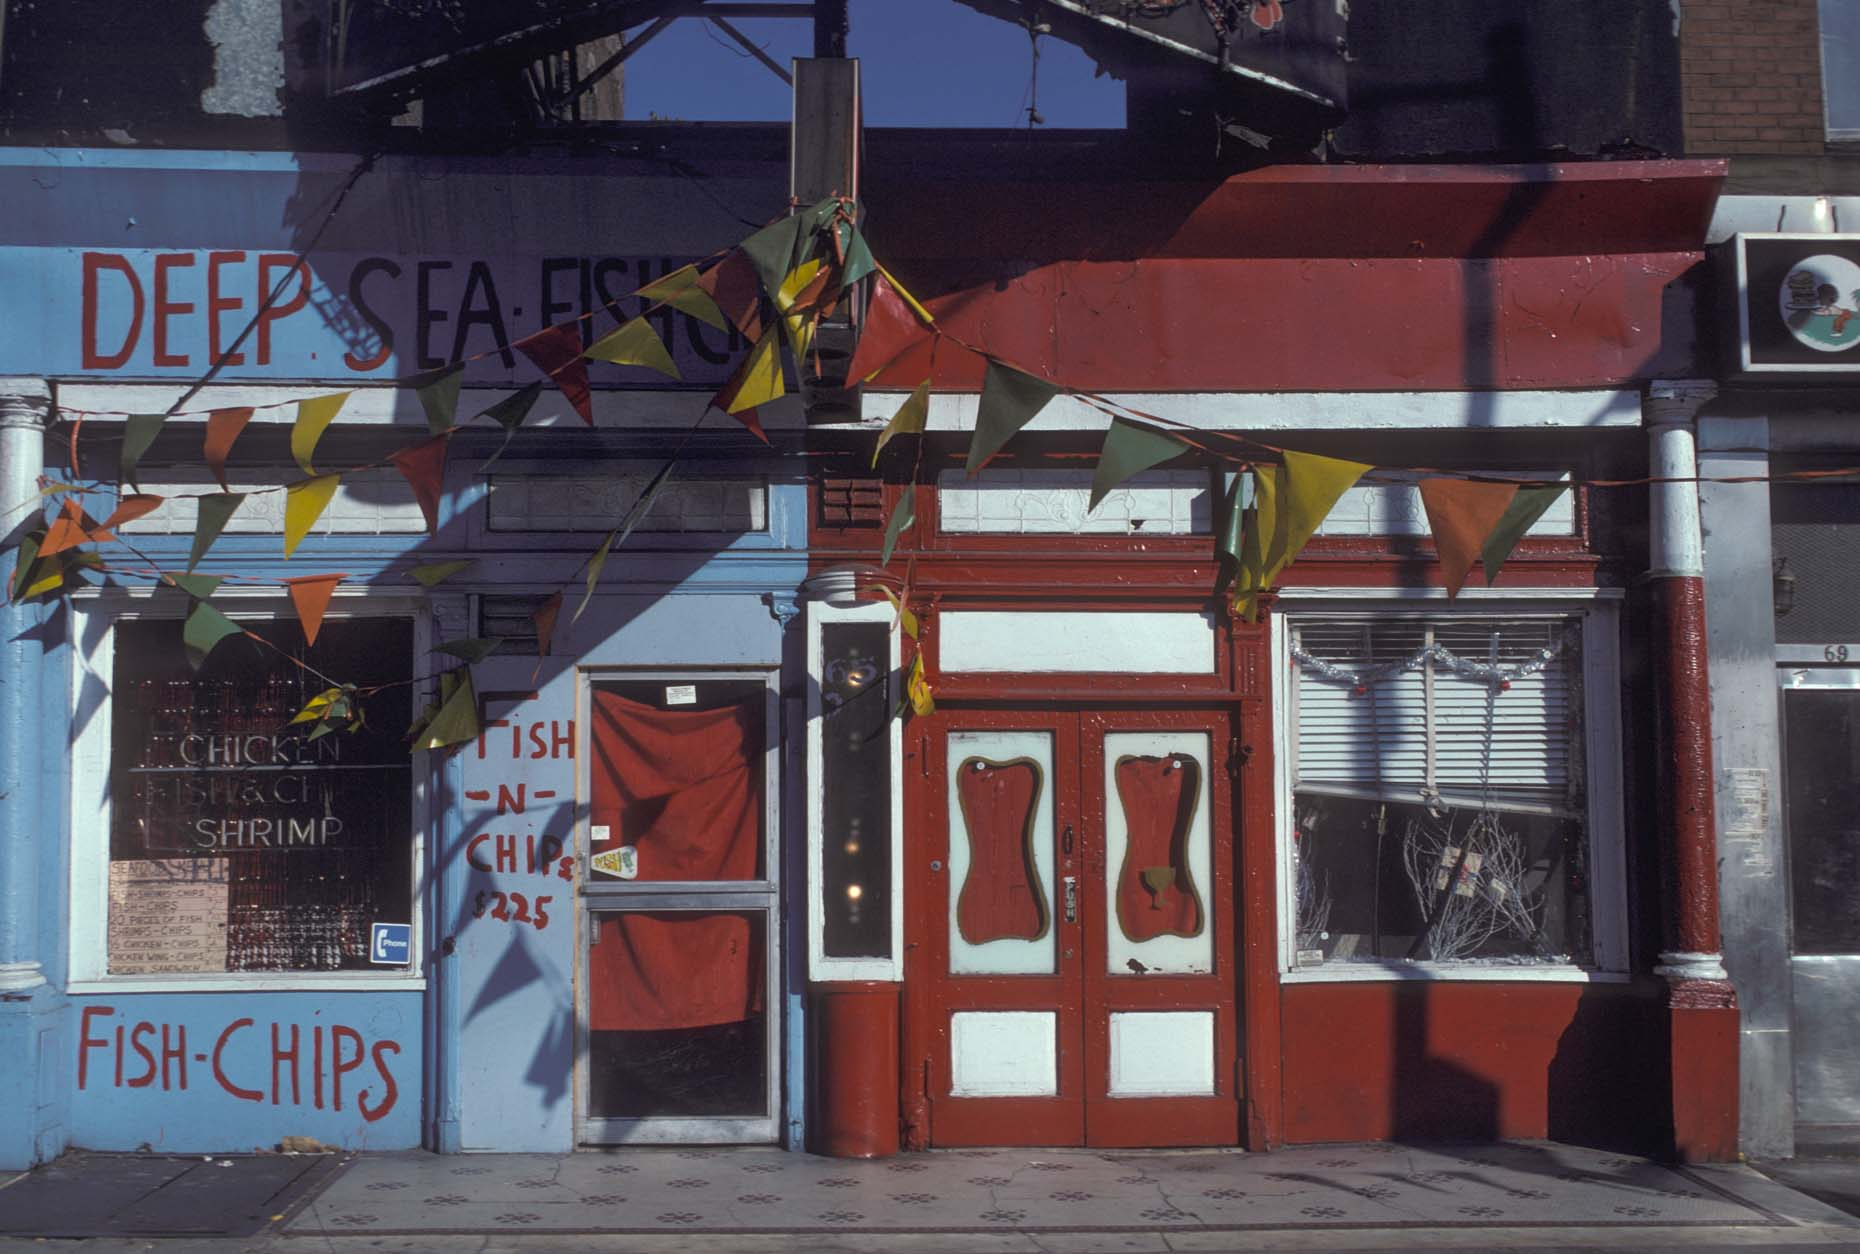 04_65 East 125th St-DUP4., Harlem 1980.jpg